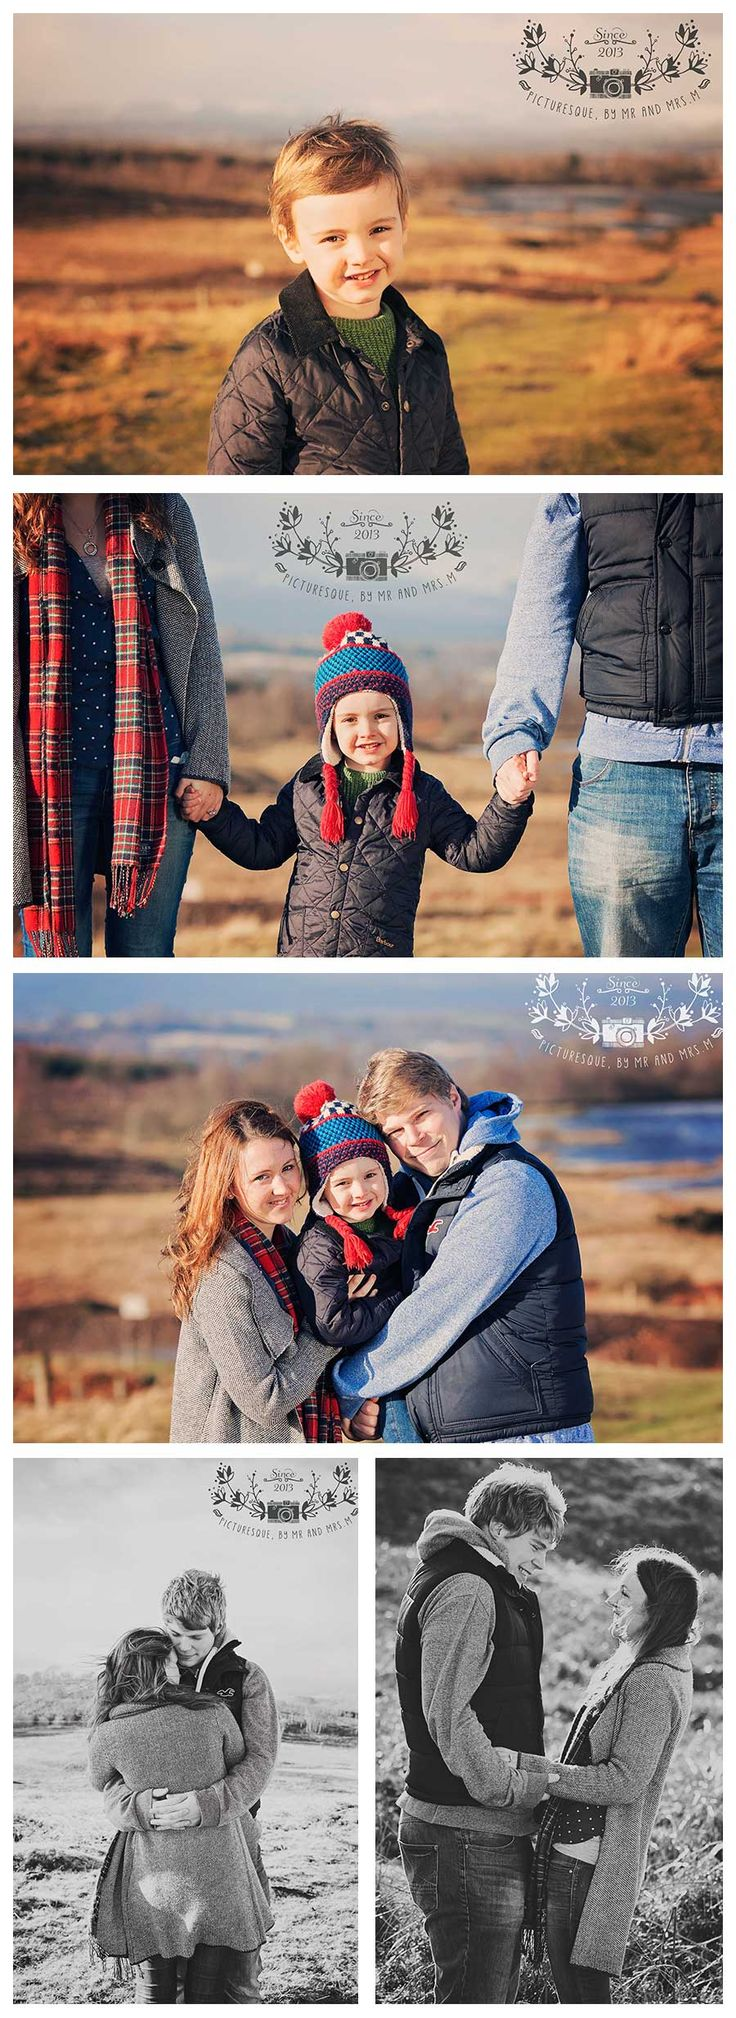 Family pre-wedding shoot on Dumyat, Stirling.  The wedding is at Cameron House, Loch Lomond next month.  This was a very bright but windy, freezing day!!  www.picturesquebymrandmrsm.com